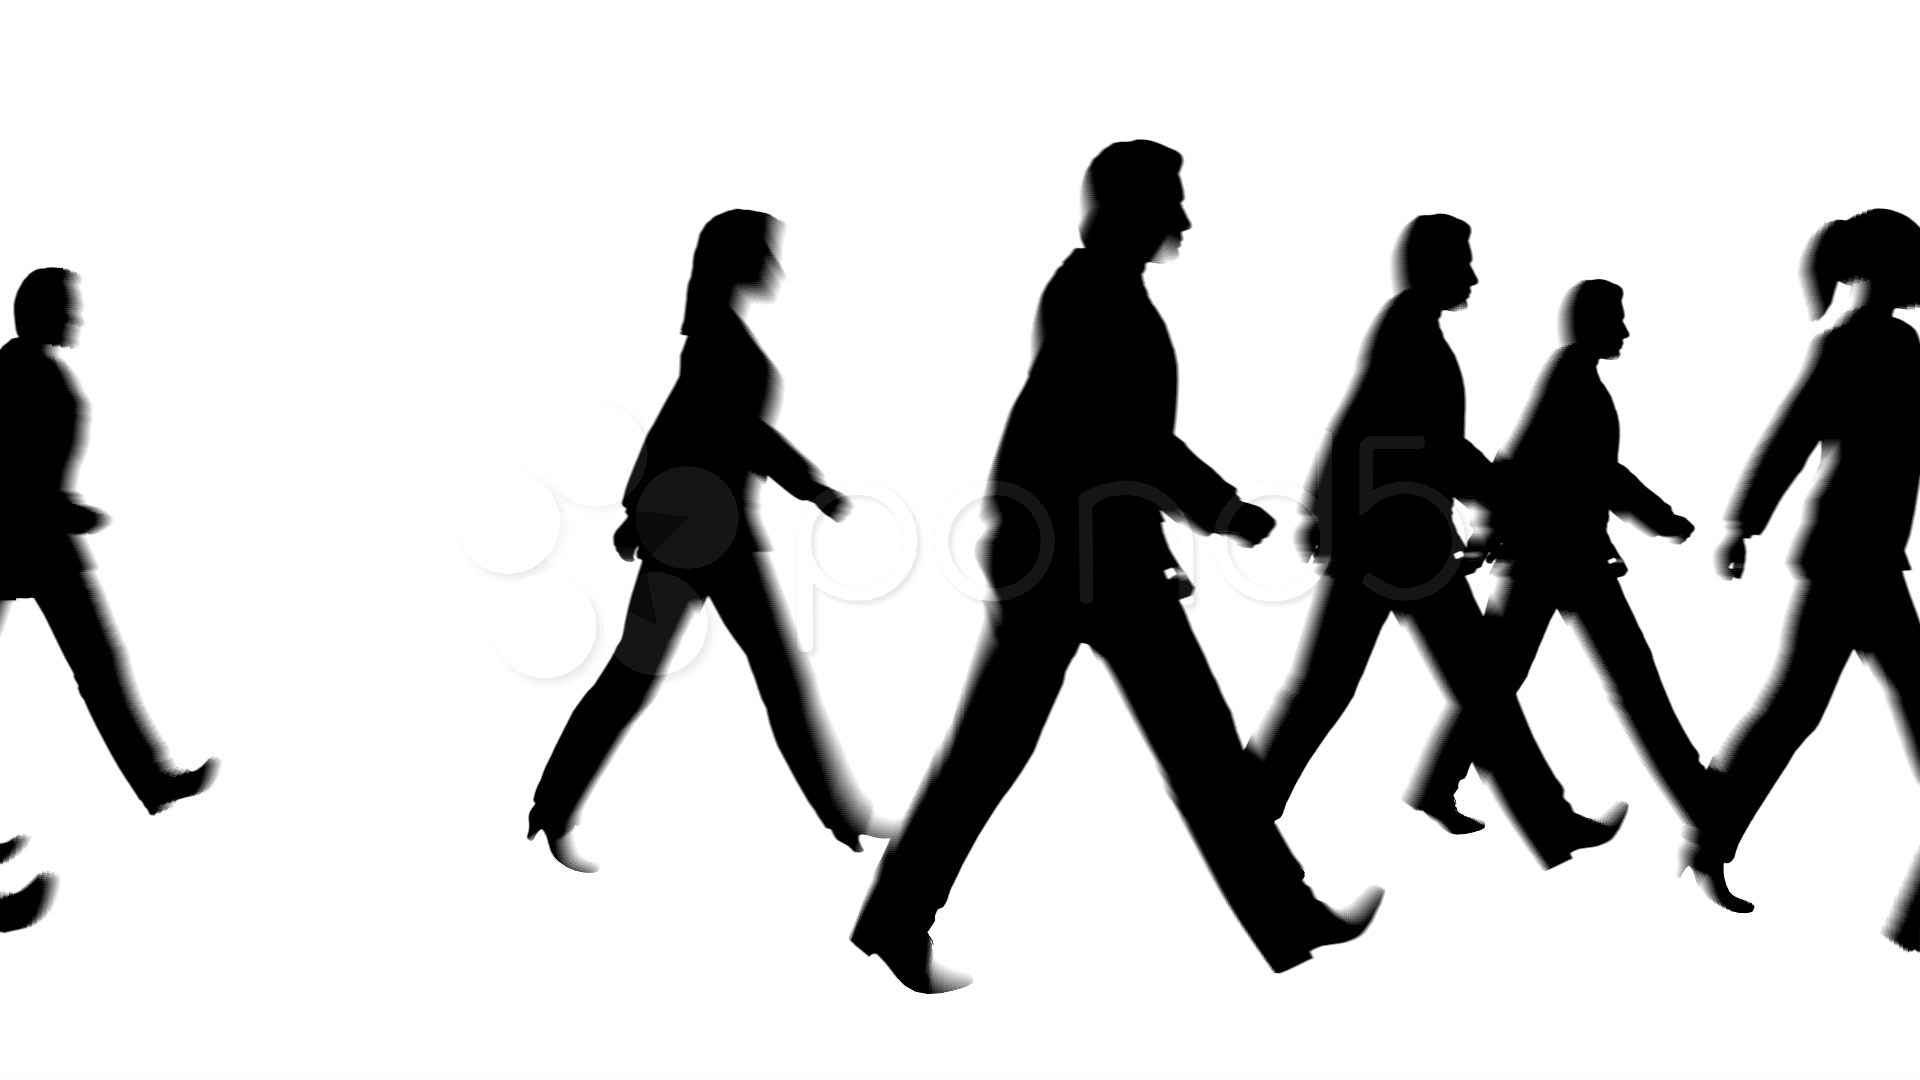 Pedestrian clipart black and white clipart freeuse Collection of Pedestrian clipart | Free download best ... clipart freeuse